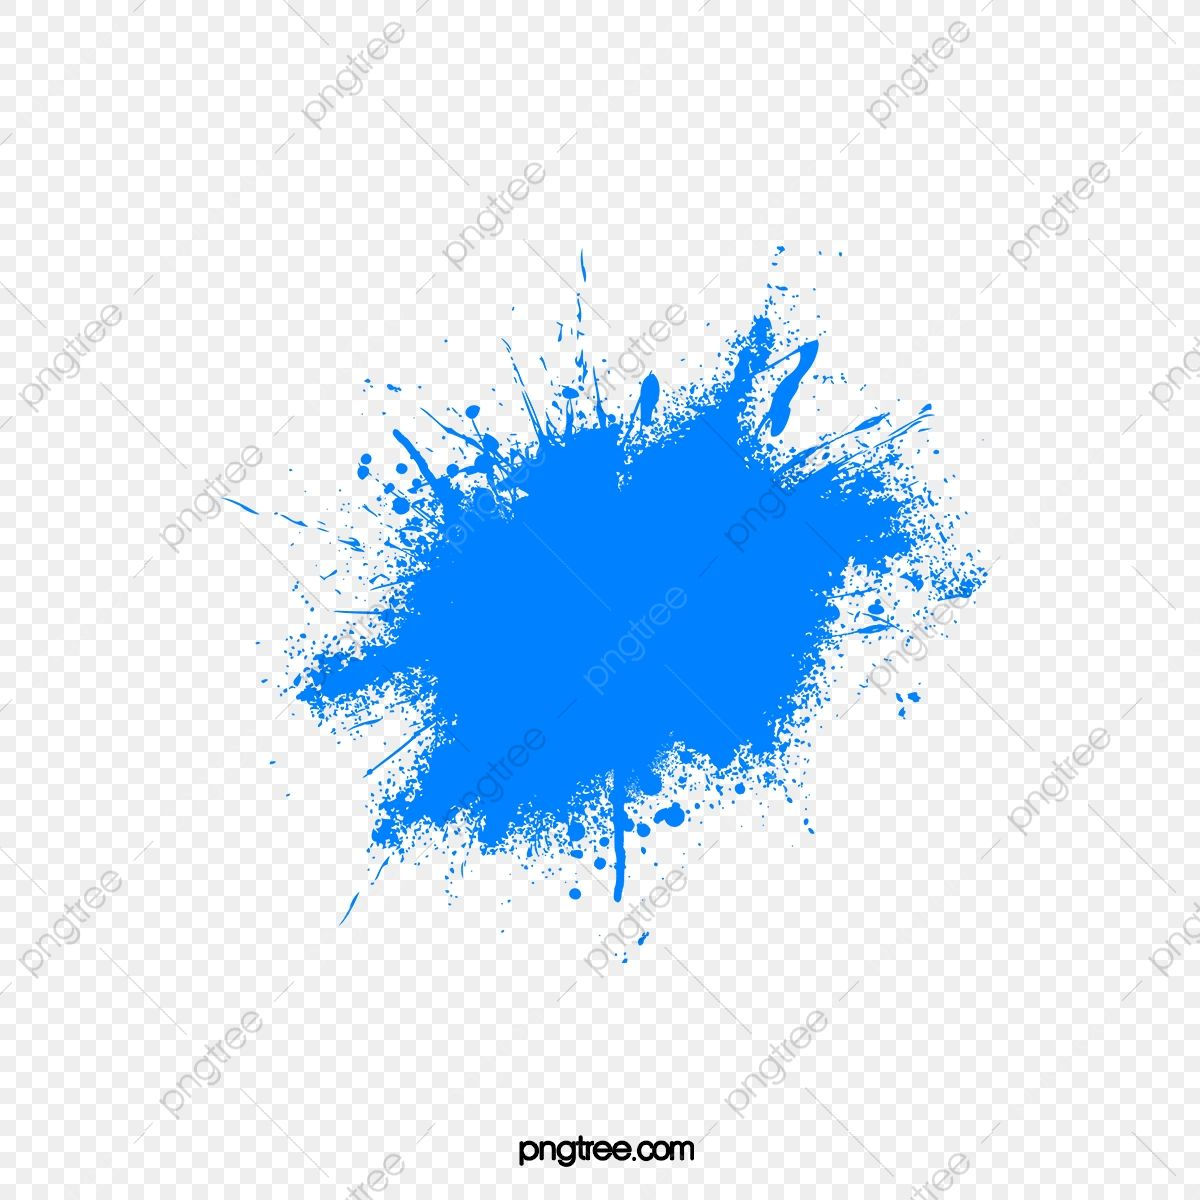 Blue Paint Splash Blue Splash Pigment Png And Vector With Transparent Background For Free Download Paint Splash Blue Paint Watercolor Splash